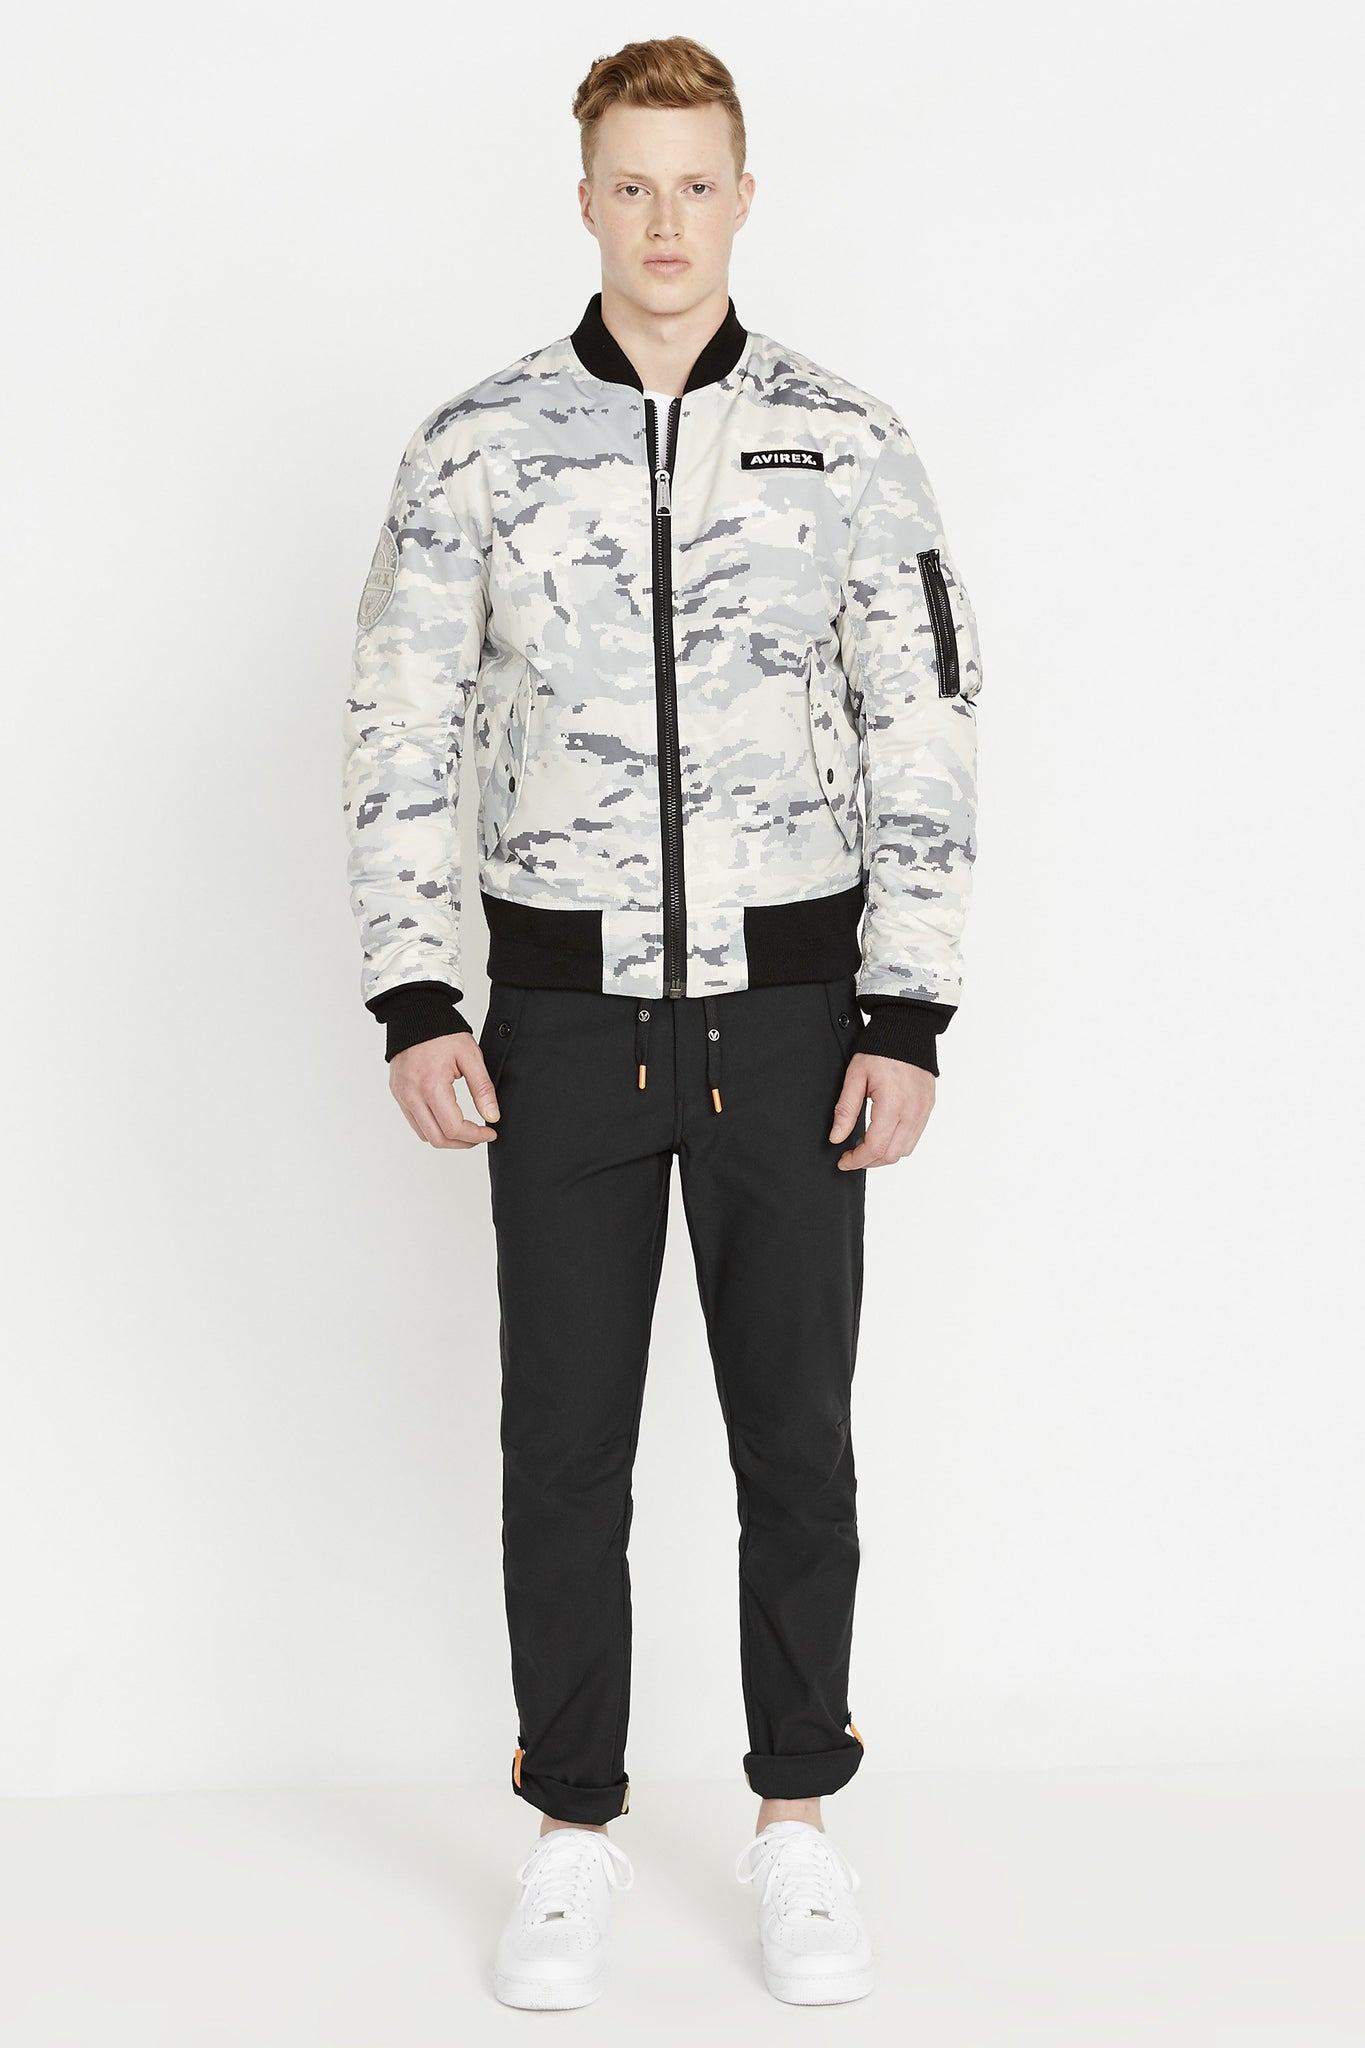 Full front view of men weaing a fully zipped snow camo printed polyester bomber jacket with Avirex logo patch on the chest,  two flap pockets on the sides and one utility pocket on left sleeve and black pants